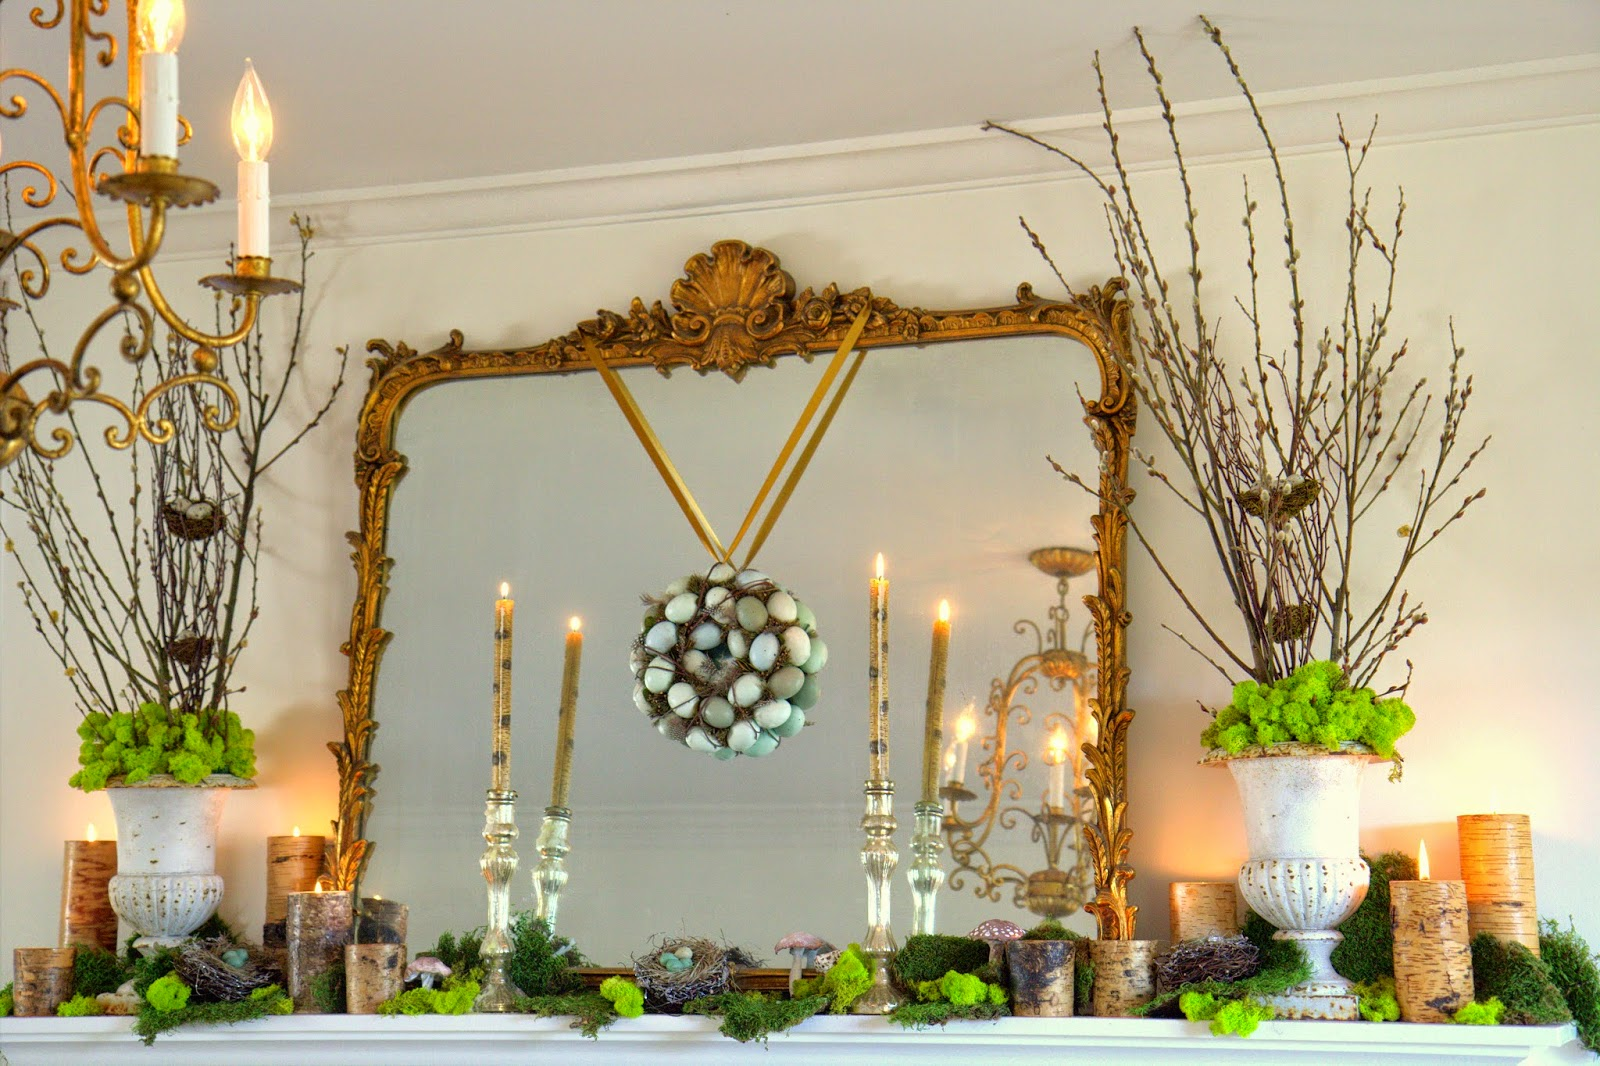 Woodland Party; Living Room mantle and decor, moss, branches, egg wreath: Nora's Nest